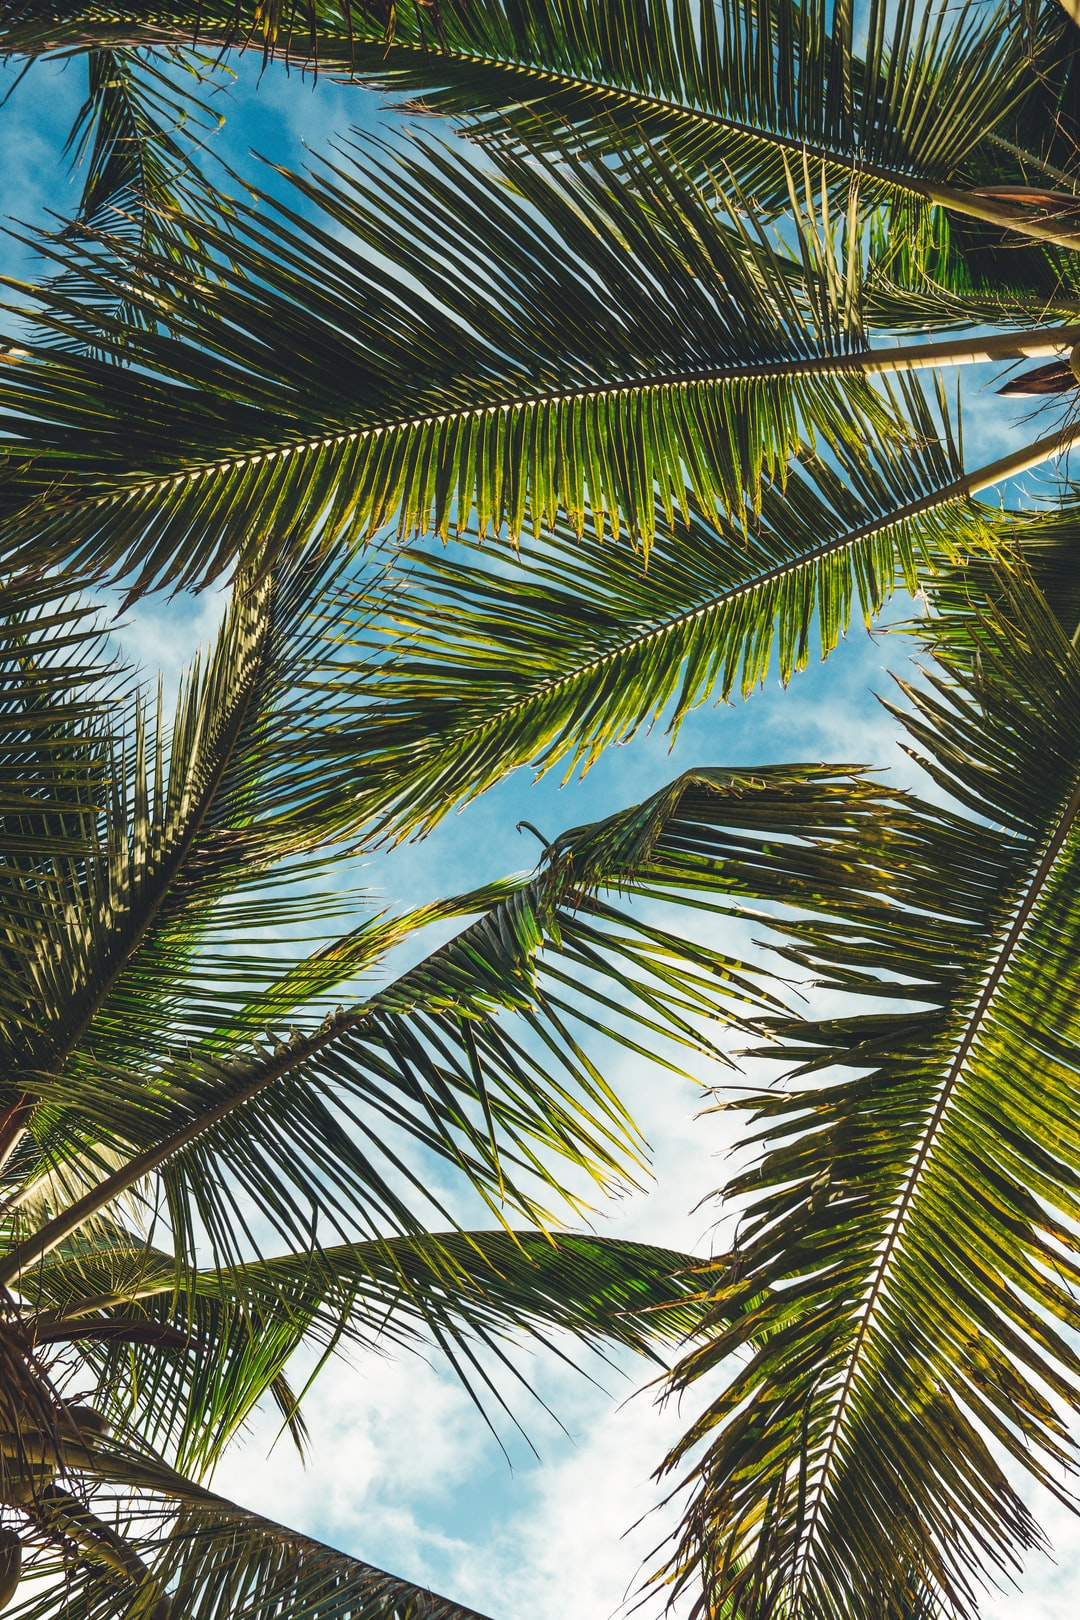 Tree Leaf Plant And Palm Tree Hd Photo By Peter Fogden